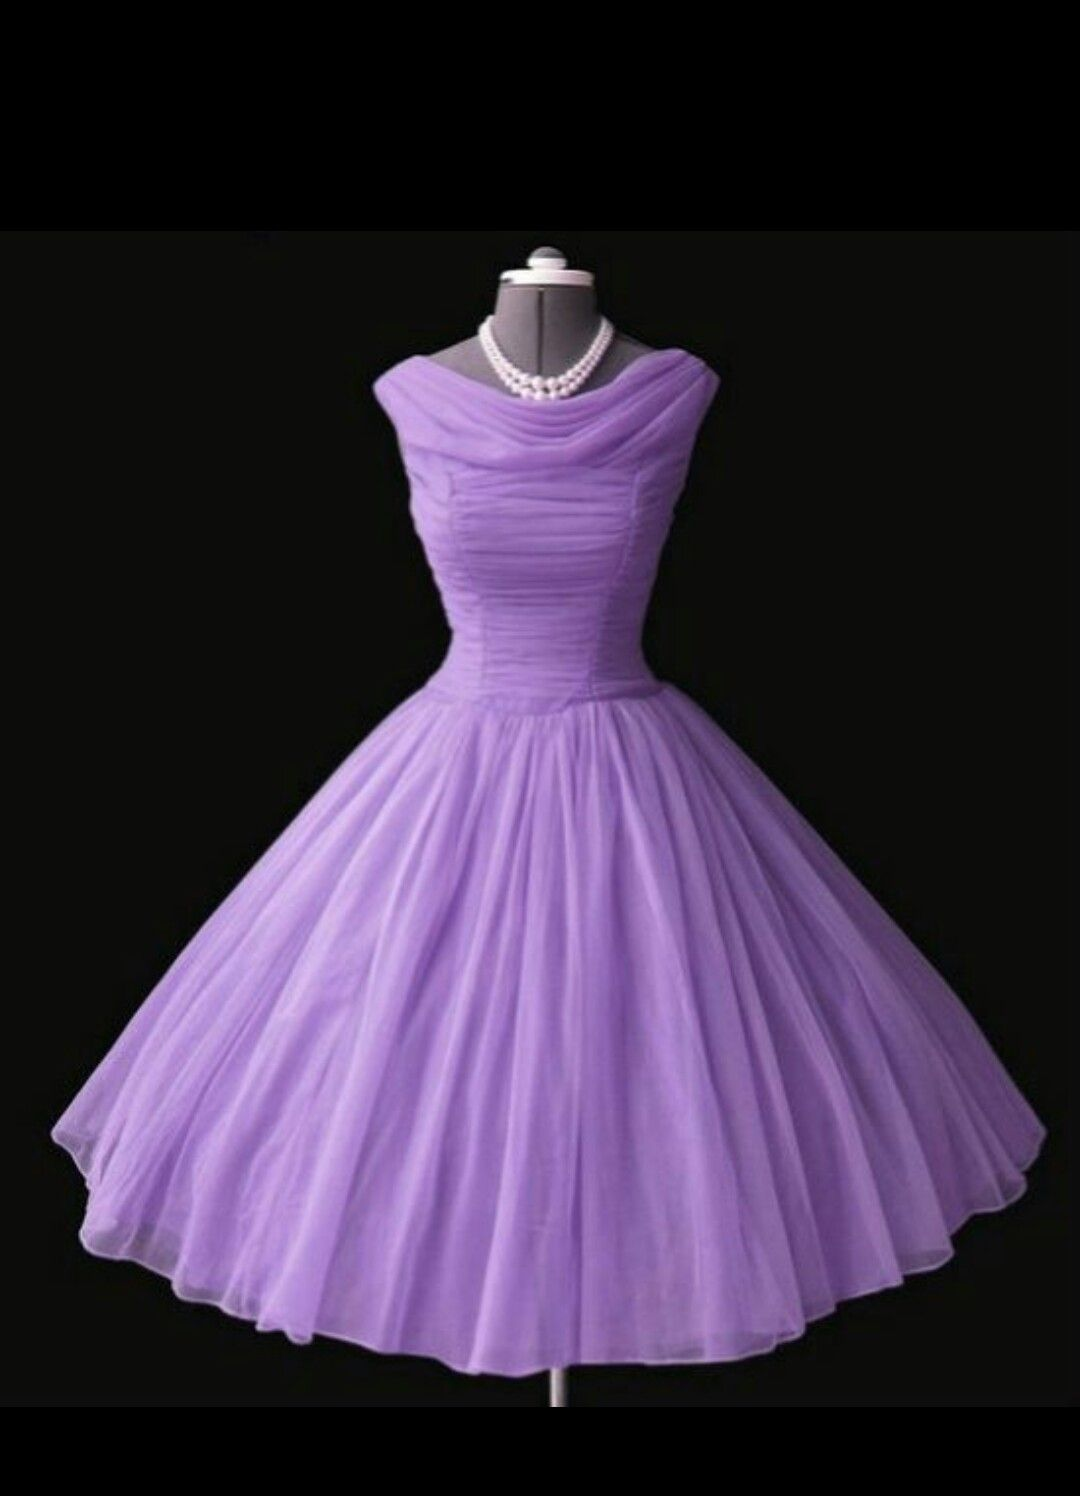 1950s lilac party dress | Romantic Clothing | Pinterest | Mujeres de ...